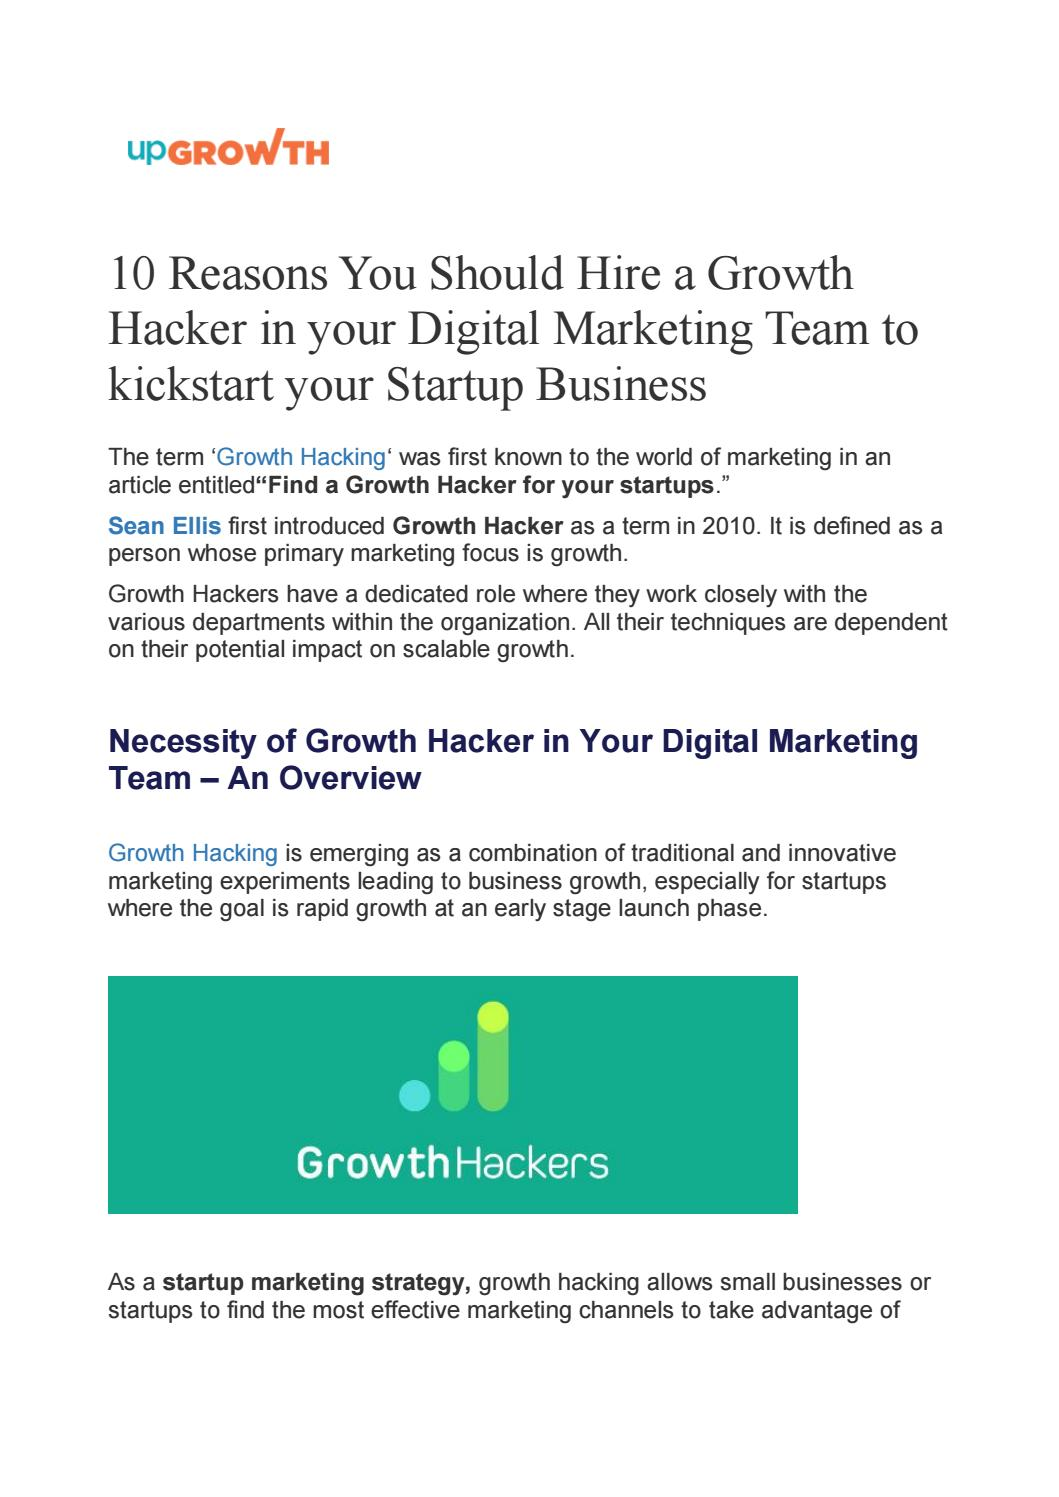 10 Reasons You Should Hire a Growth Hacker in your Digital